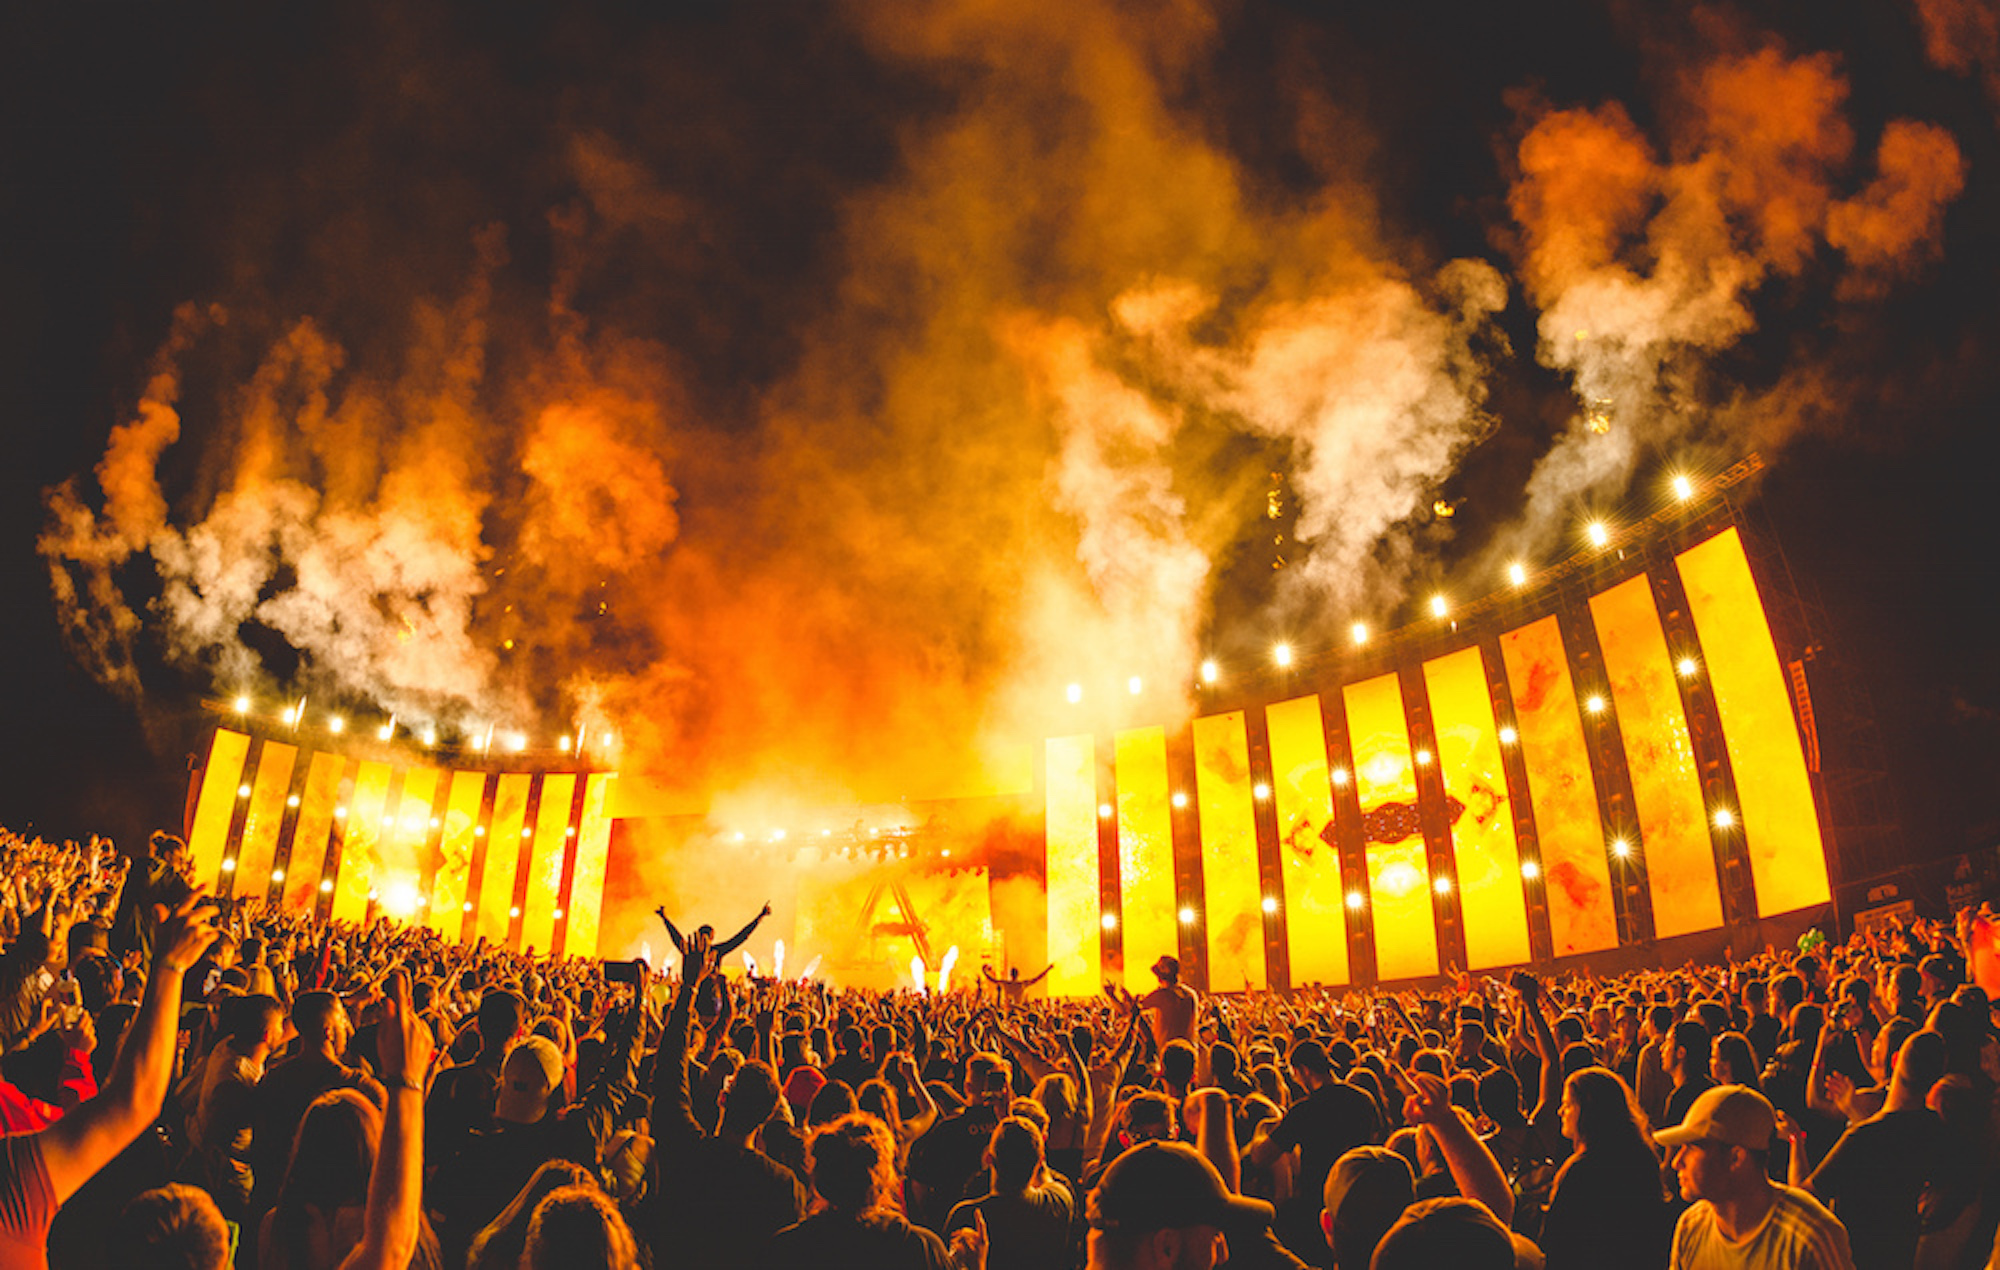 Creamfields announce virtual festival featuring never-seen-before sets